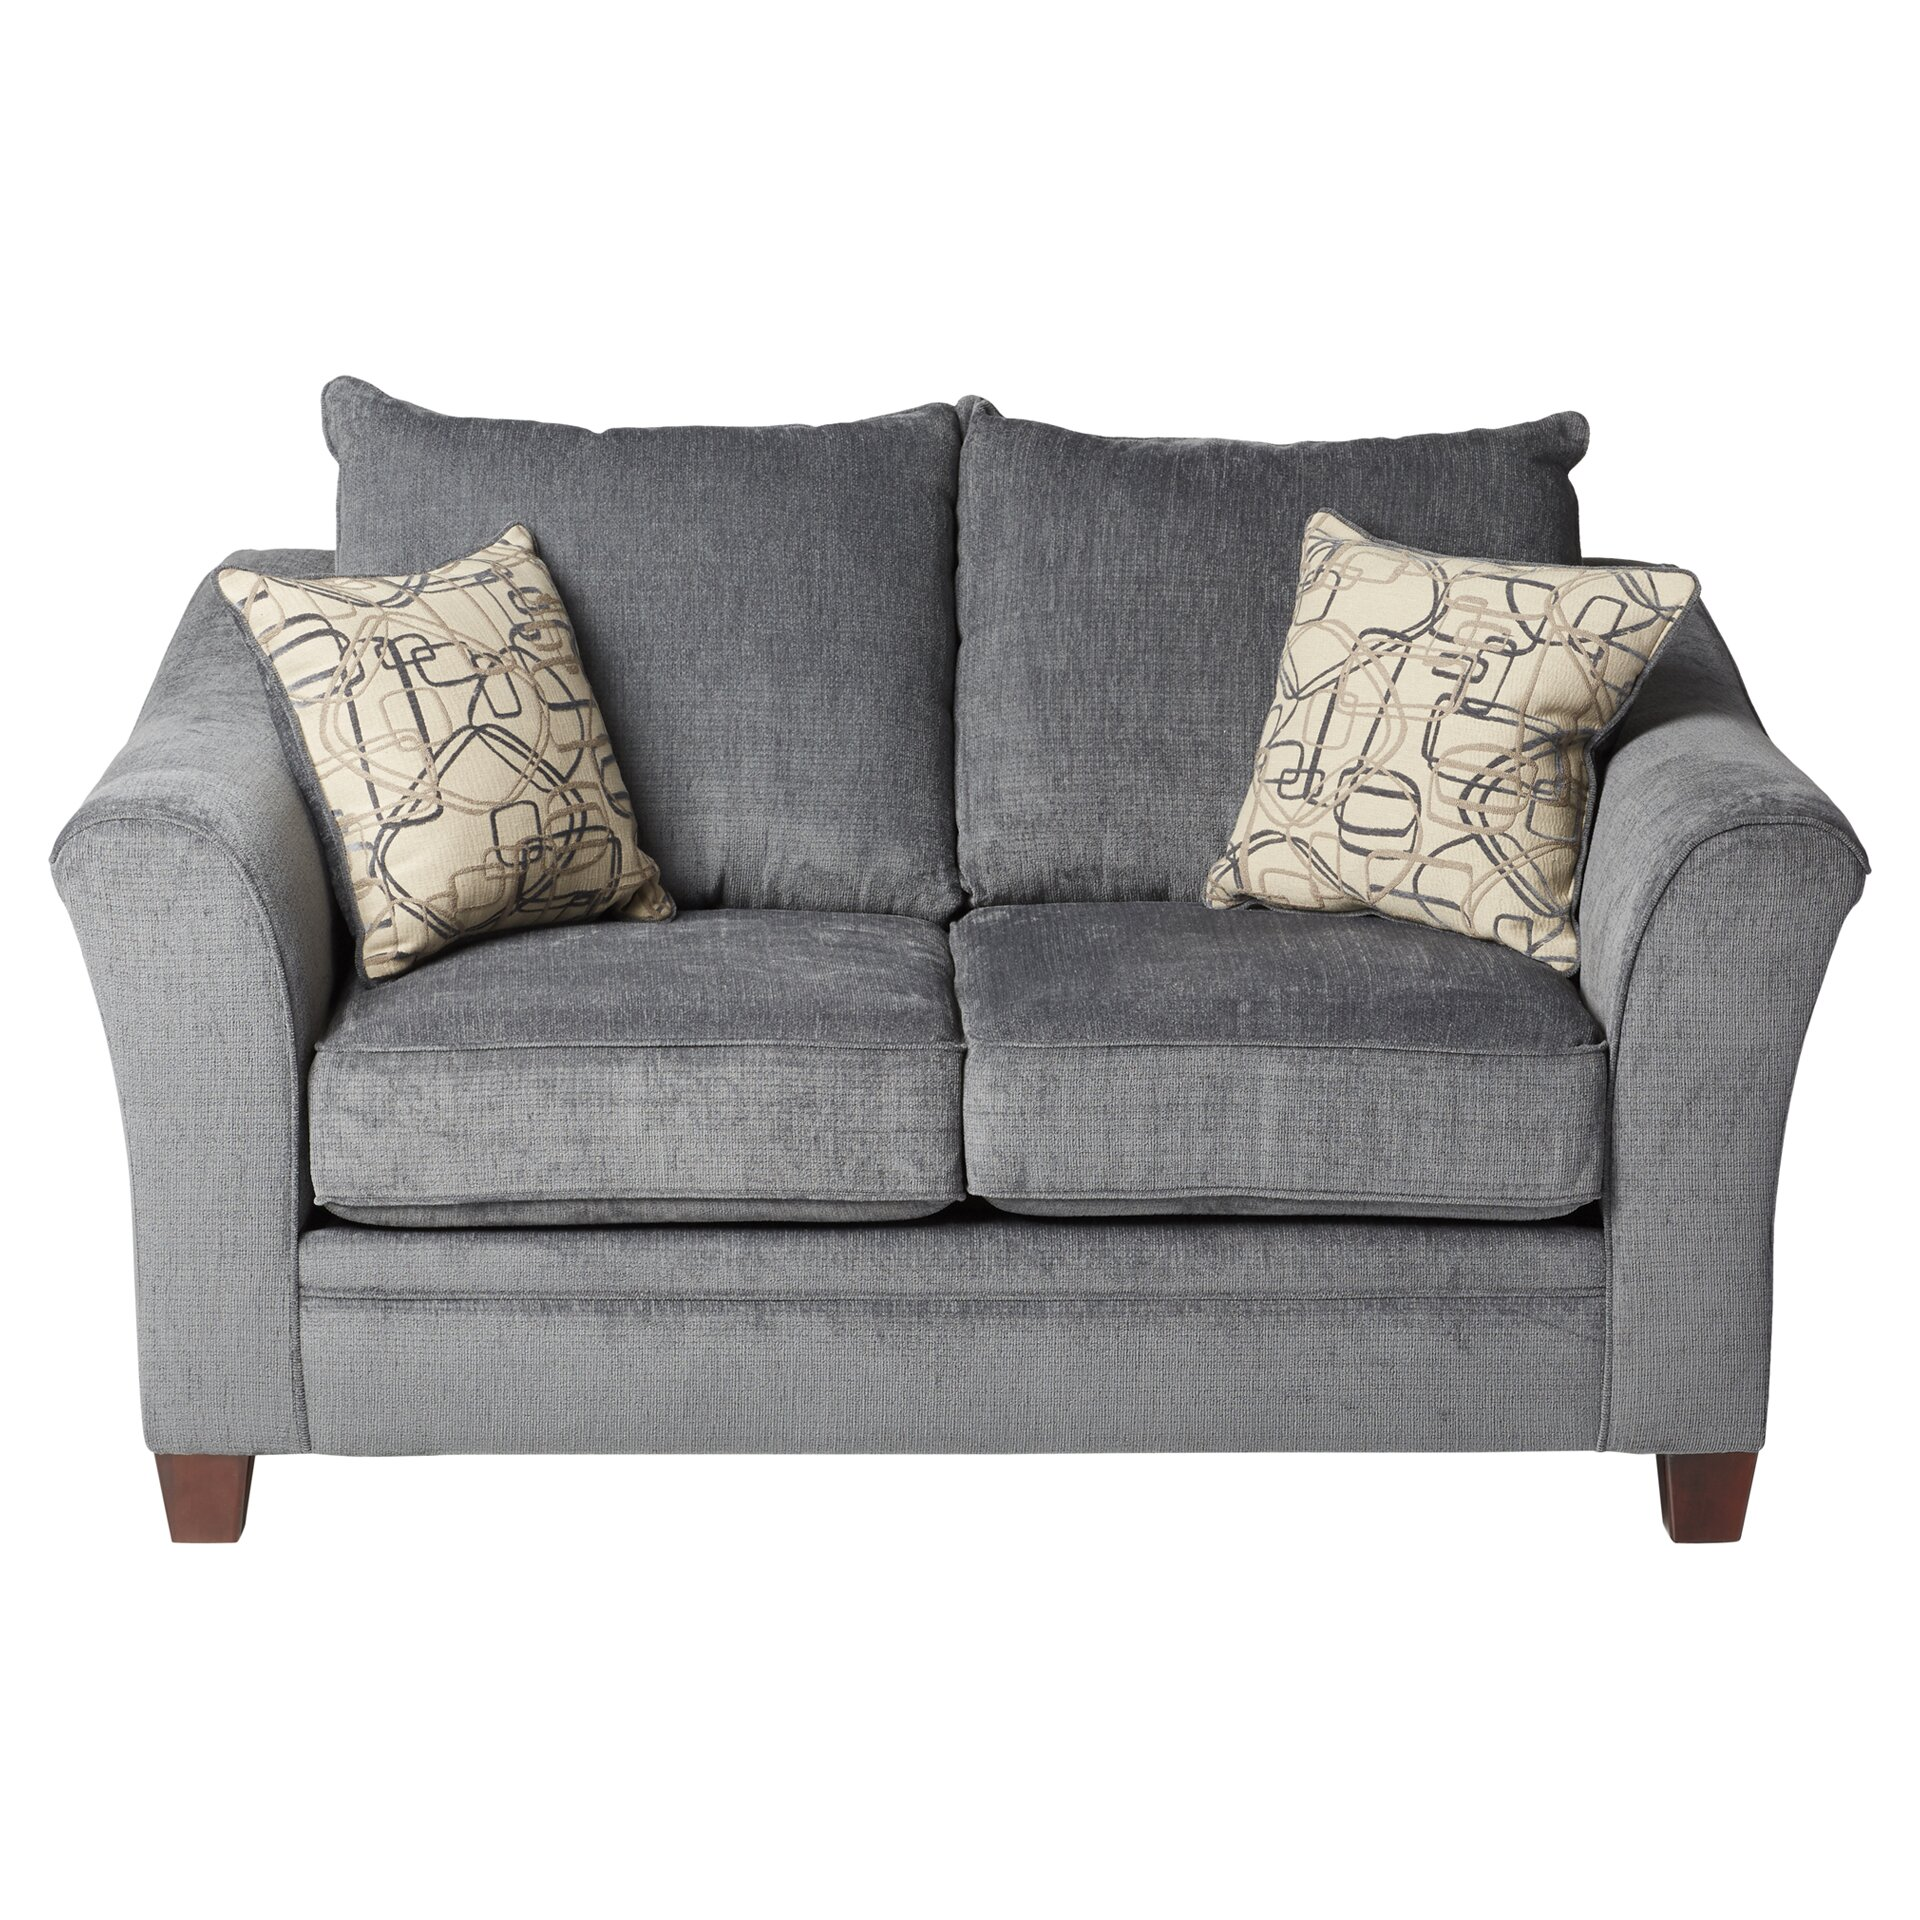 Three Posts Simmons Upholstery Derry Loveseat Reviews Wayfair